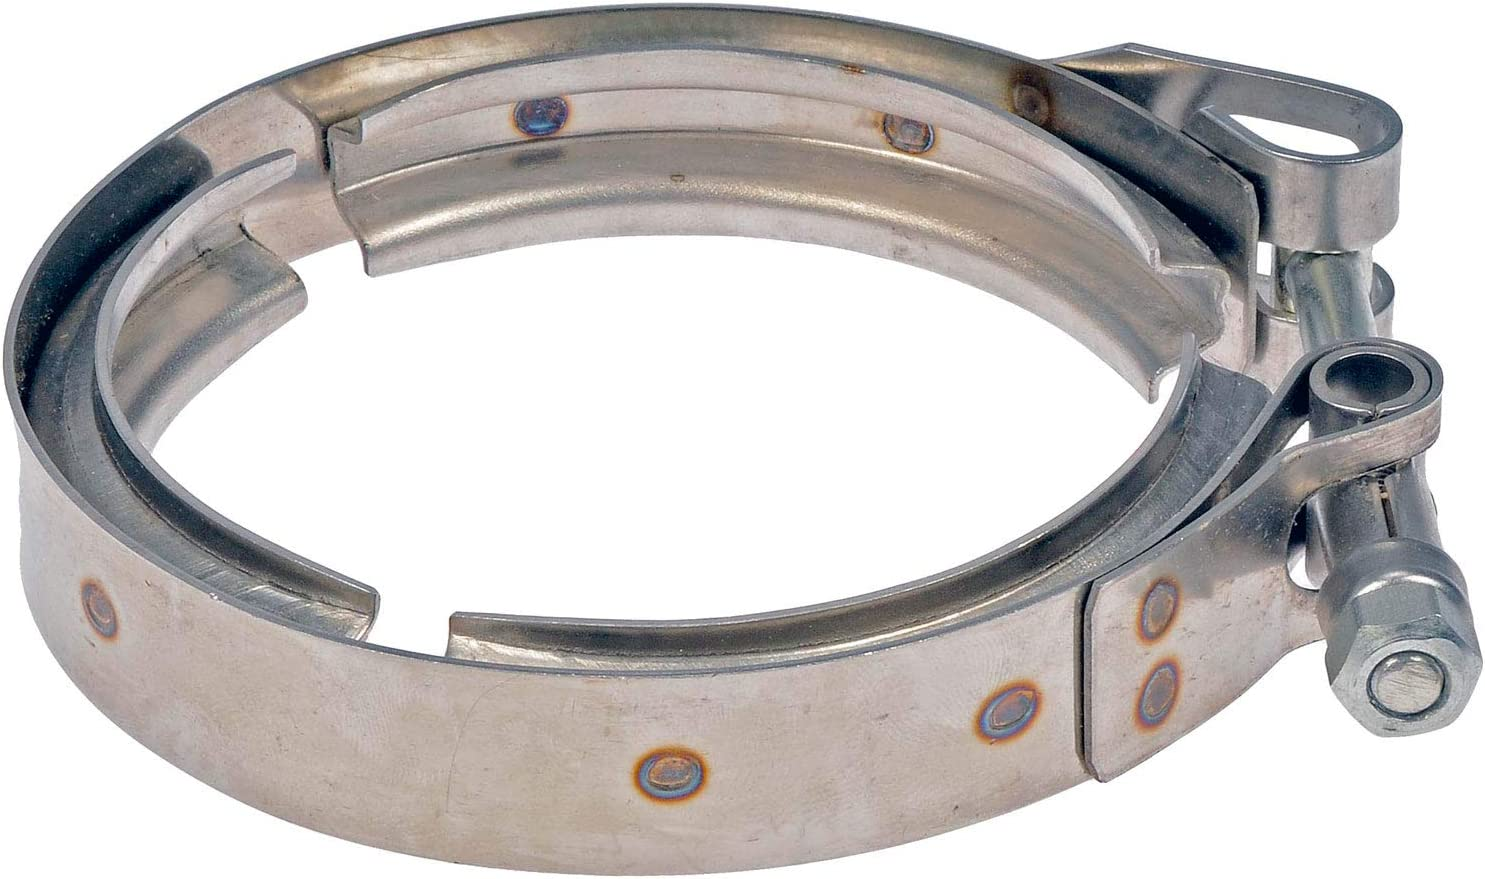 Dorman 904-250 Exhaust Clamp